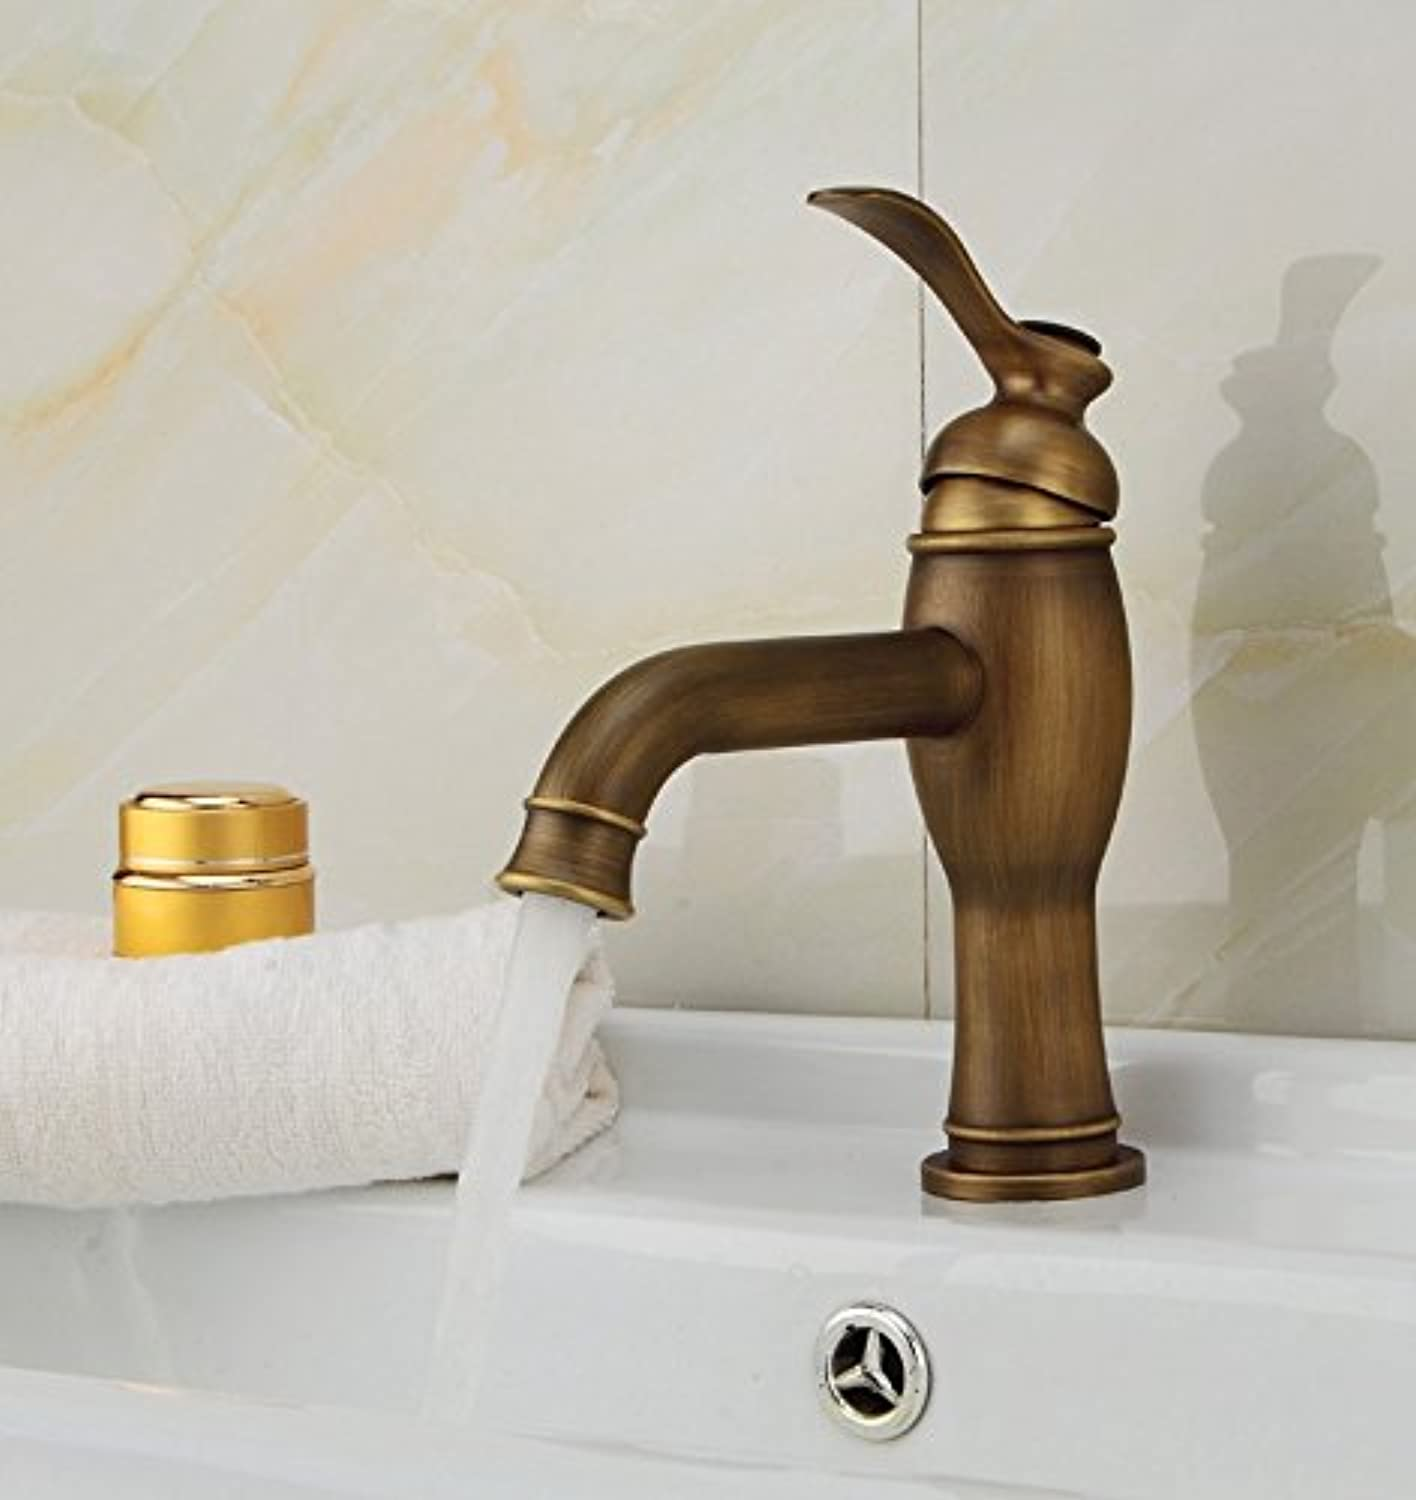 Makej Antique Faucet tap Basin Basin